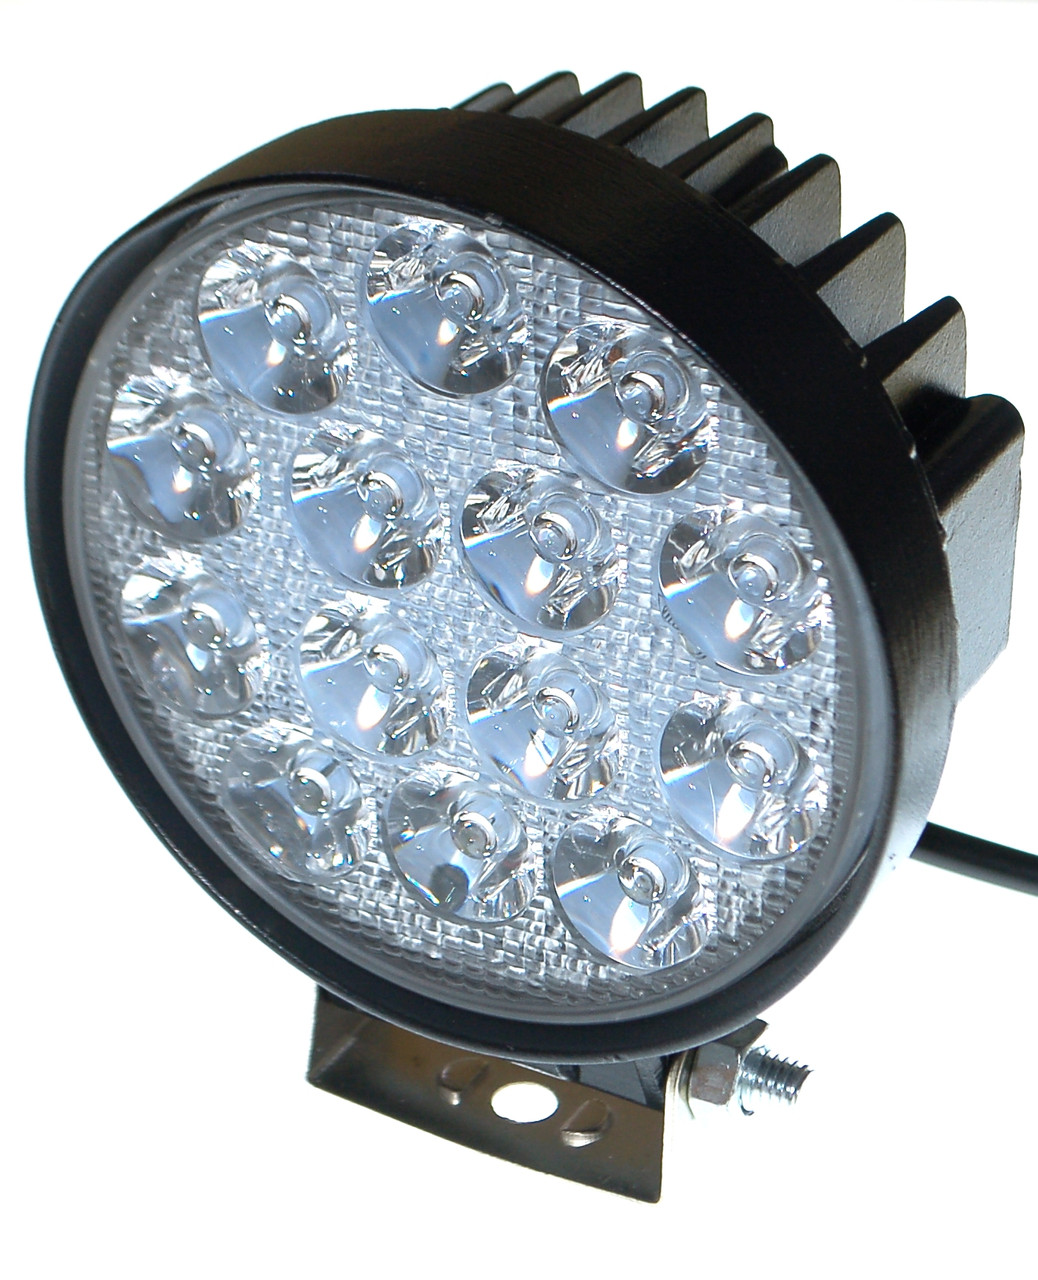 Светодиодная фара AllLight 27type 42W 14chip OSRAM 3535 spot 9-30V